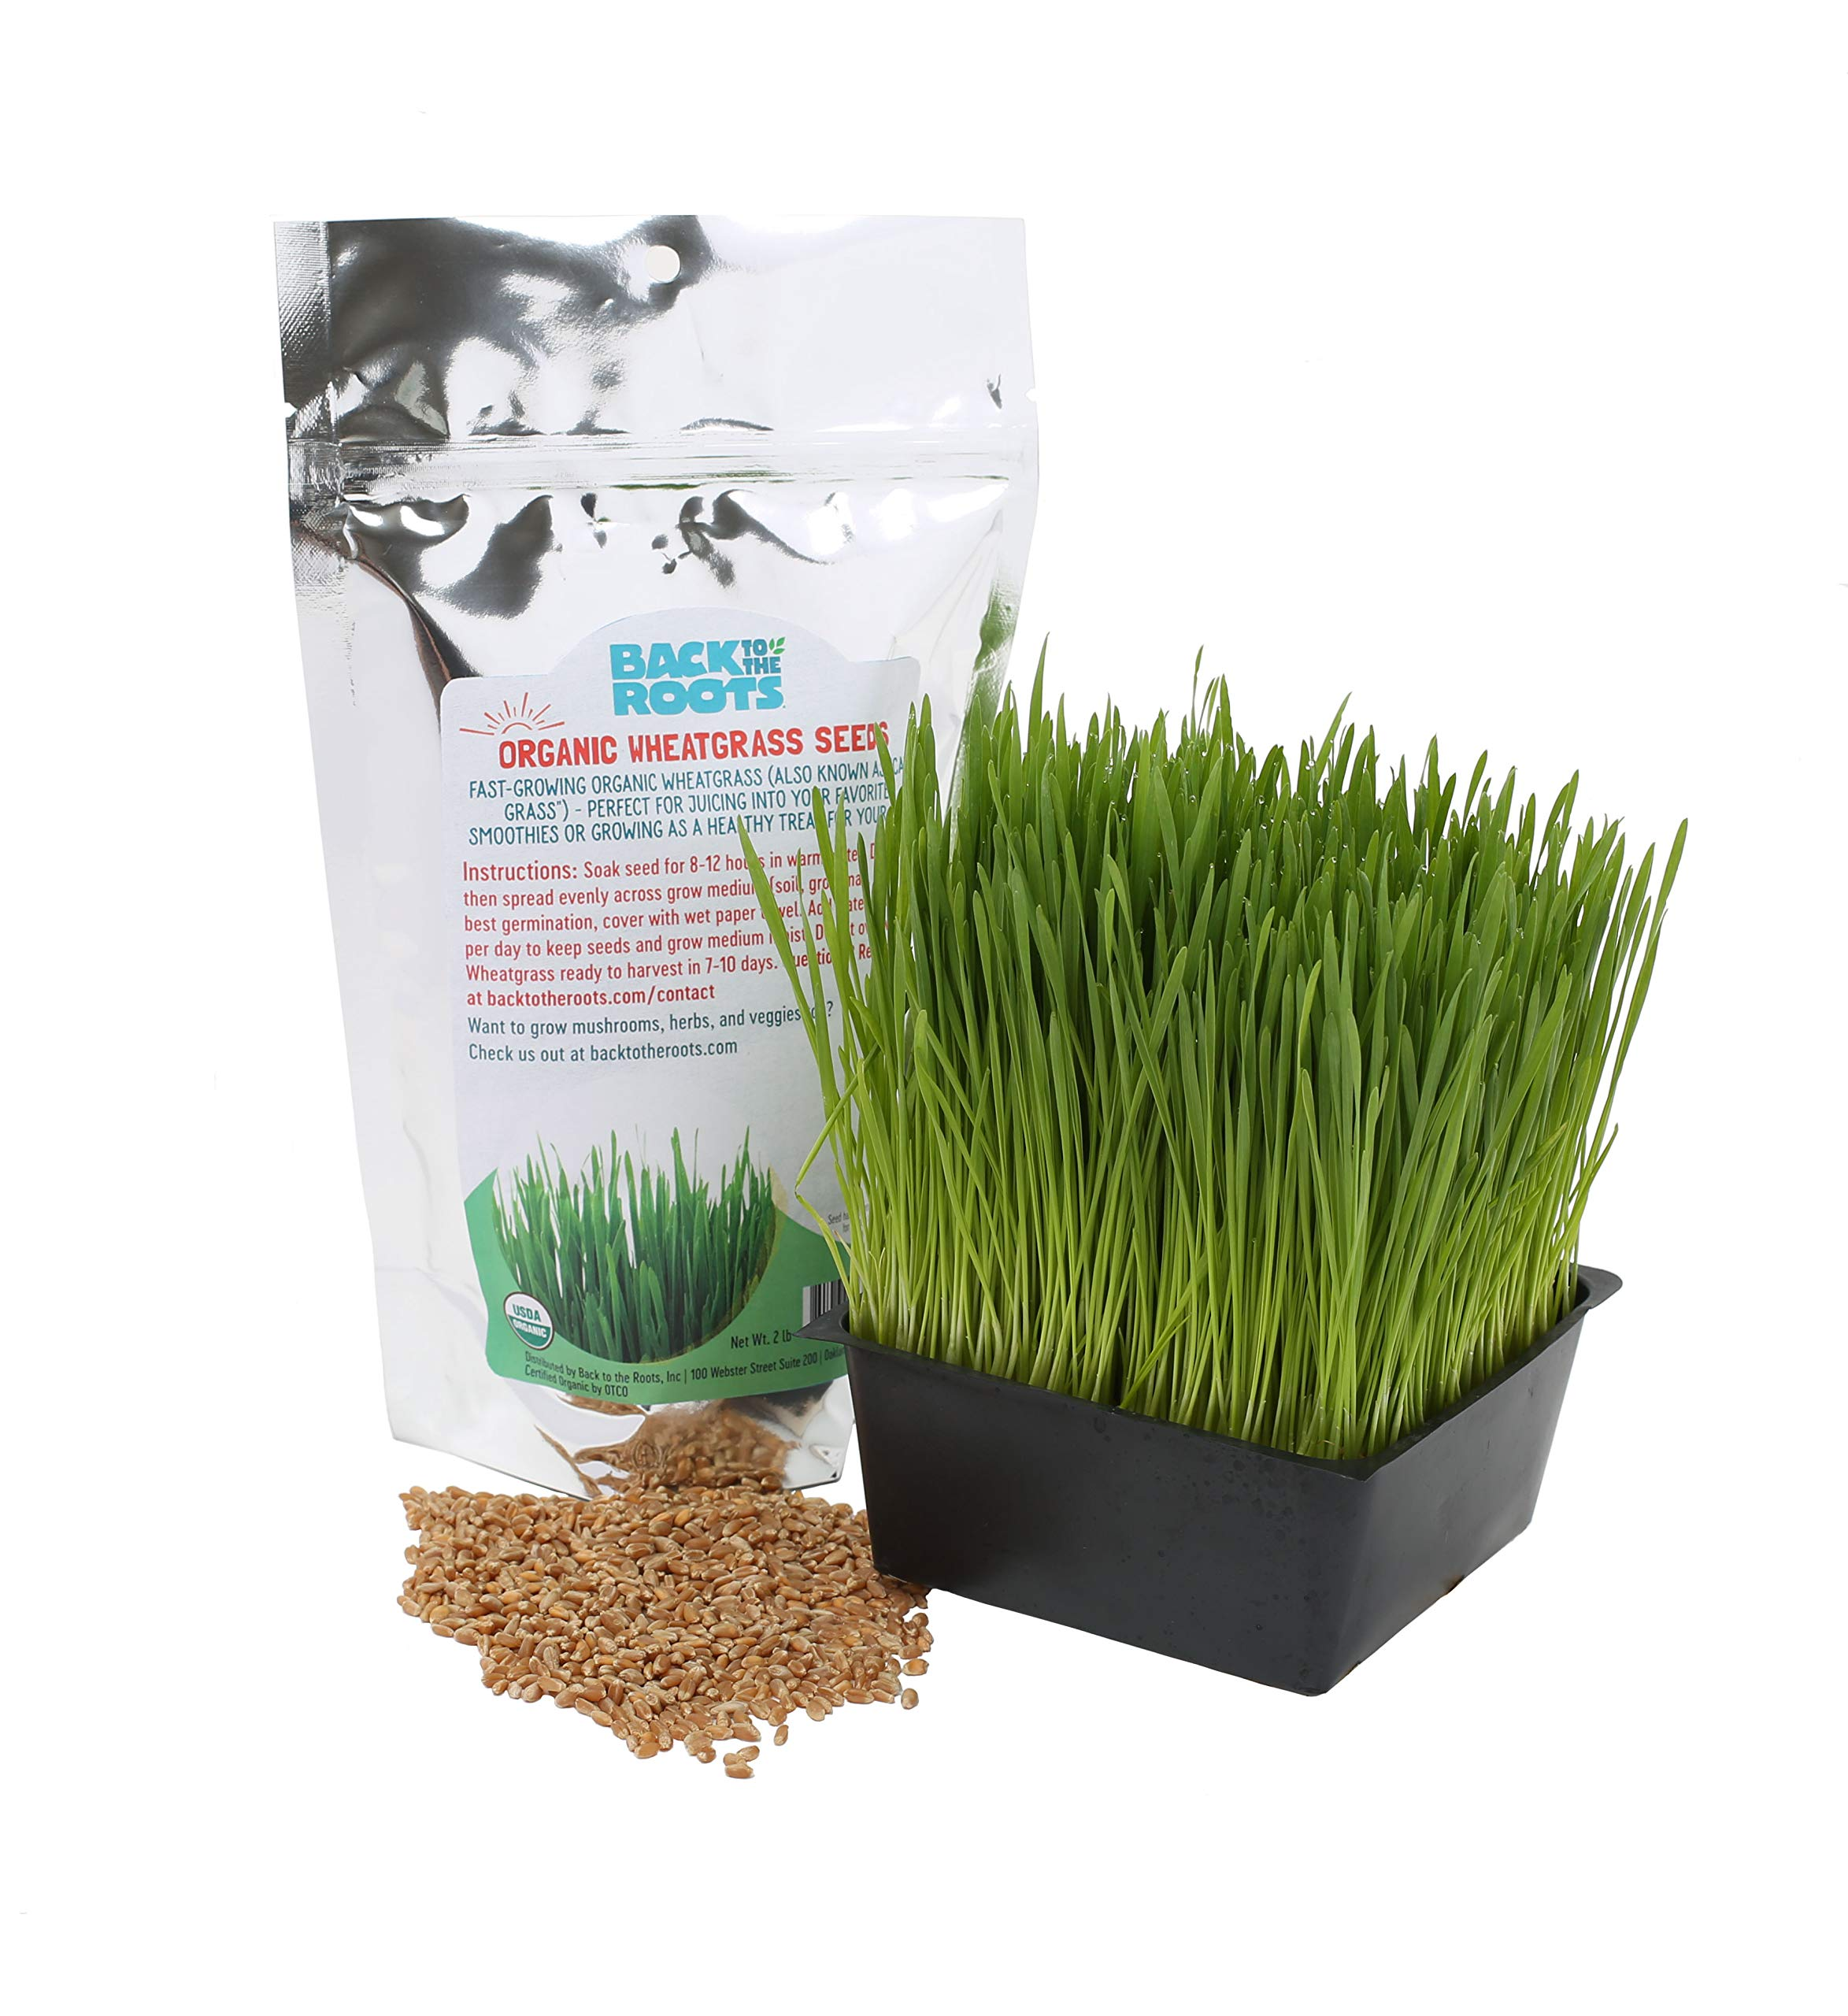 Back to the Roots Organic Cat Grass Seeds, Wheatgrass Seeds for Planting, 2lb Bag, Grow Wheatgrass Plant Indoors in 5-7 Days, Guaranteed to Grow, Natural Hairball Remedy for Cats, Non-GMO, Made in USA